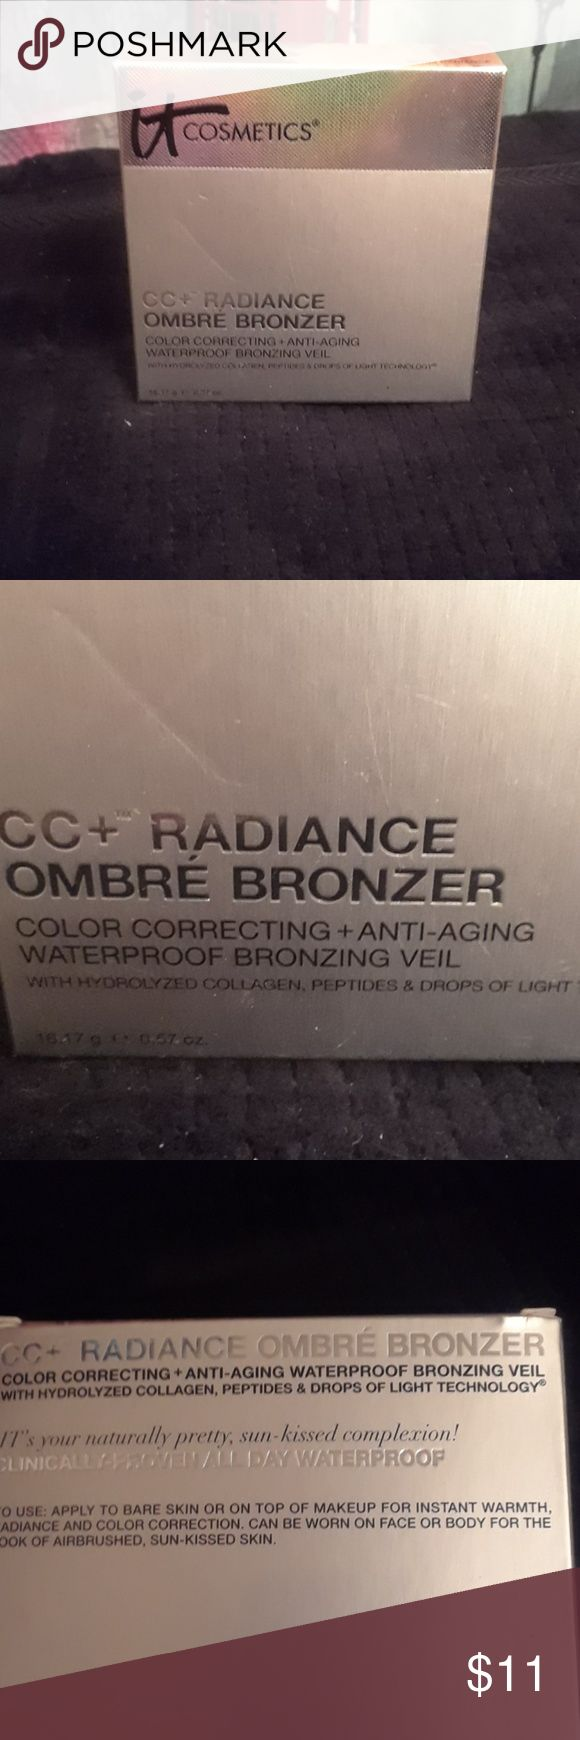 Waterproof Bronzing Veil Cc+radiance ombre bronzer. Color correcting + anti-aging wayerproof bronzing veil with hydrolyzed collagen, peptides & dfops oc light technology. 16.17 g  0.57 oz. Clinicallg proven all day waterproof. it cosmetics Makeup Bronzer